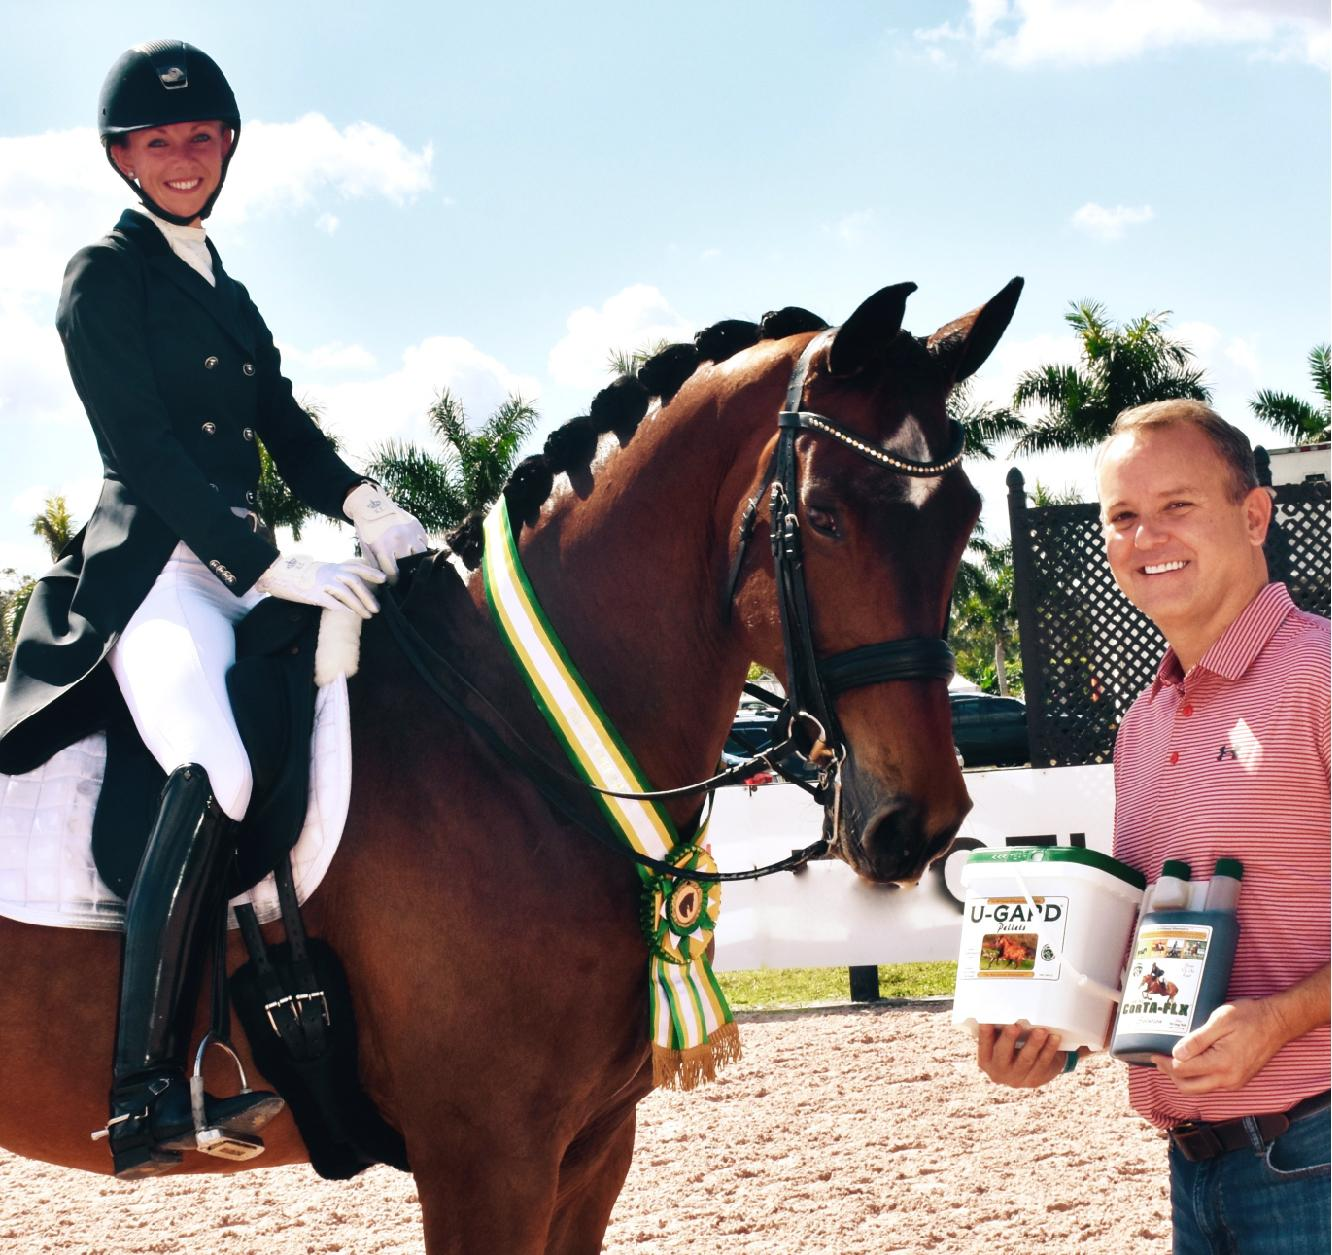 charlie_ohara_of_corta-flex_inc._presents_the_corta-flx_sport_horse_of_the_week_award_to_laura_graves_and_verdades.jpeg